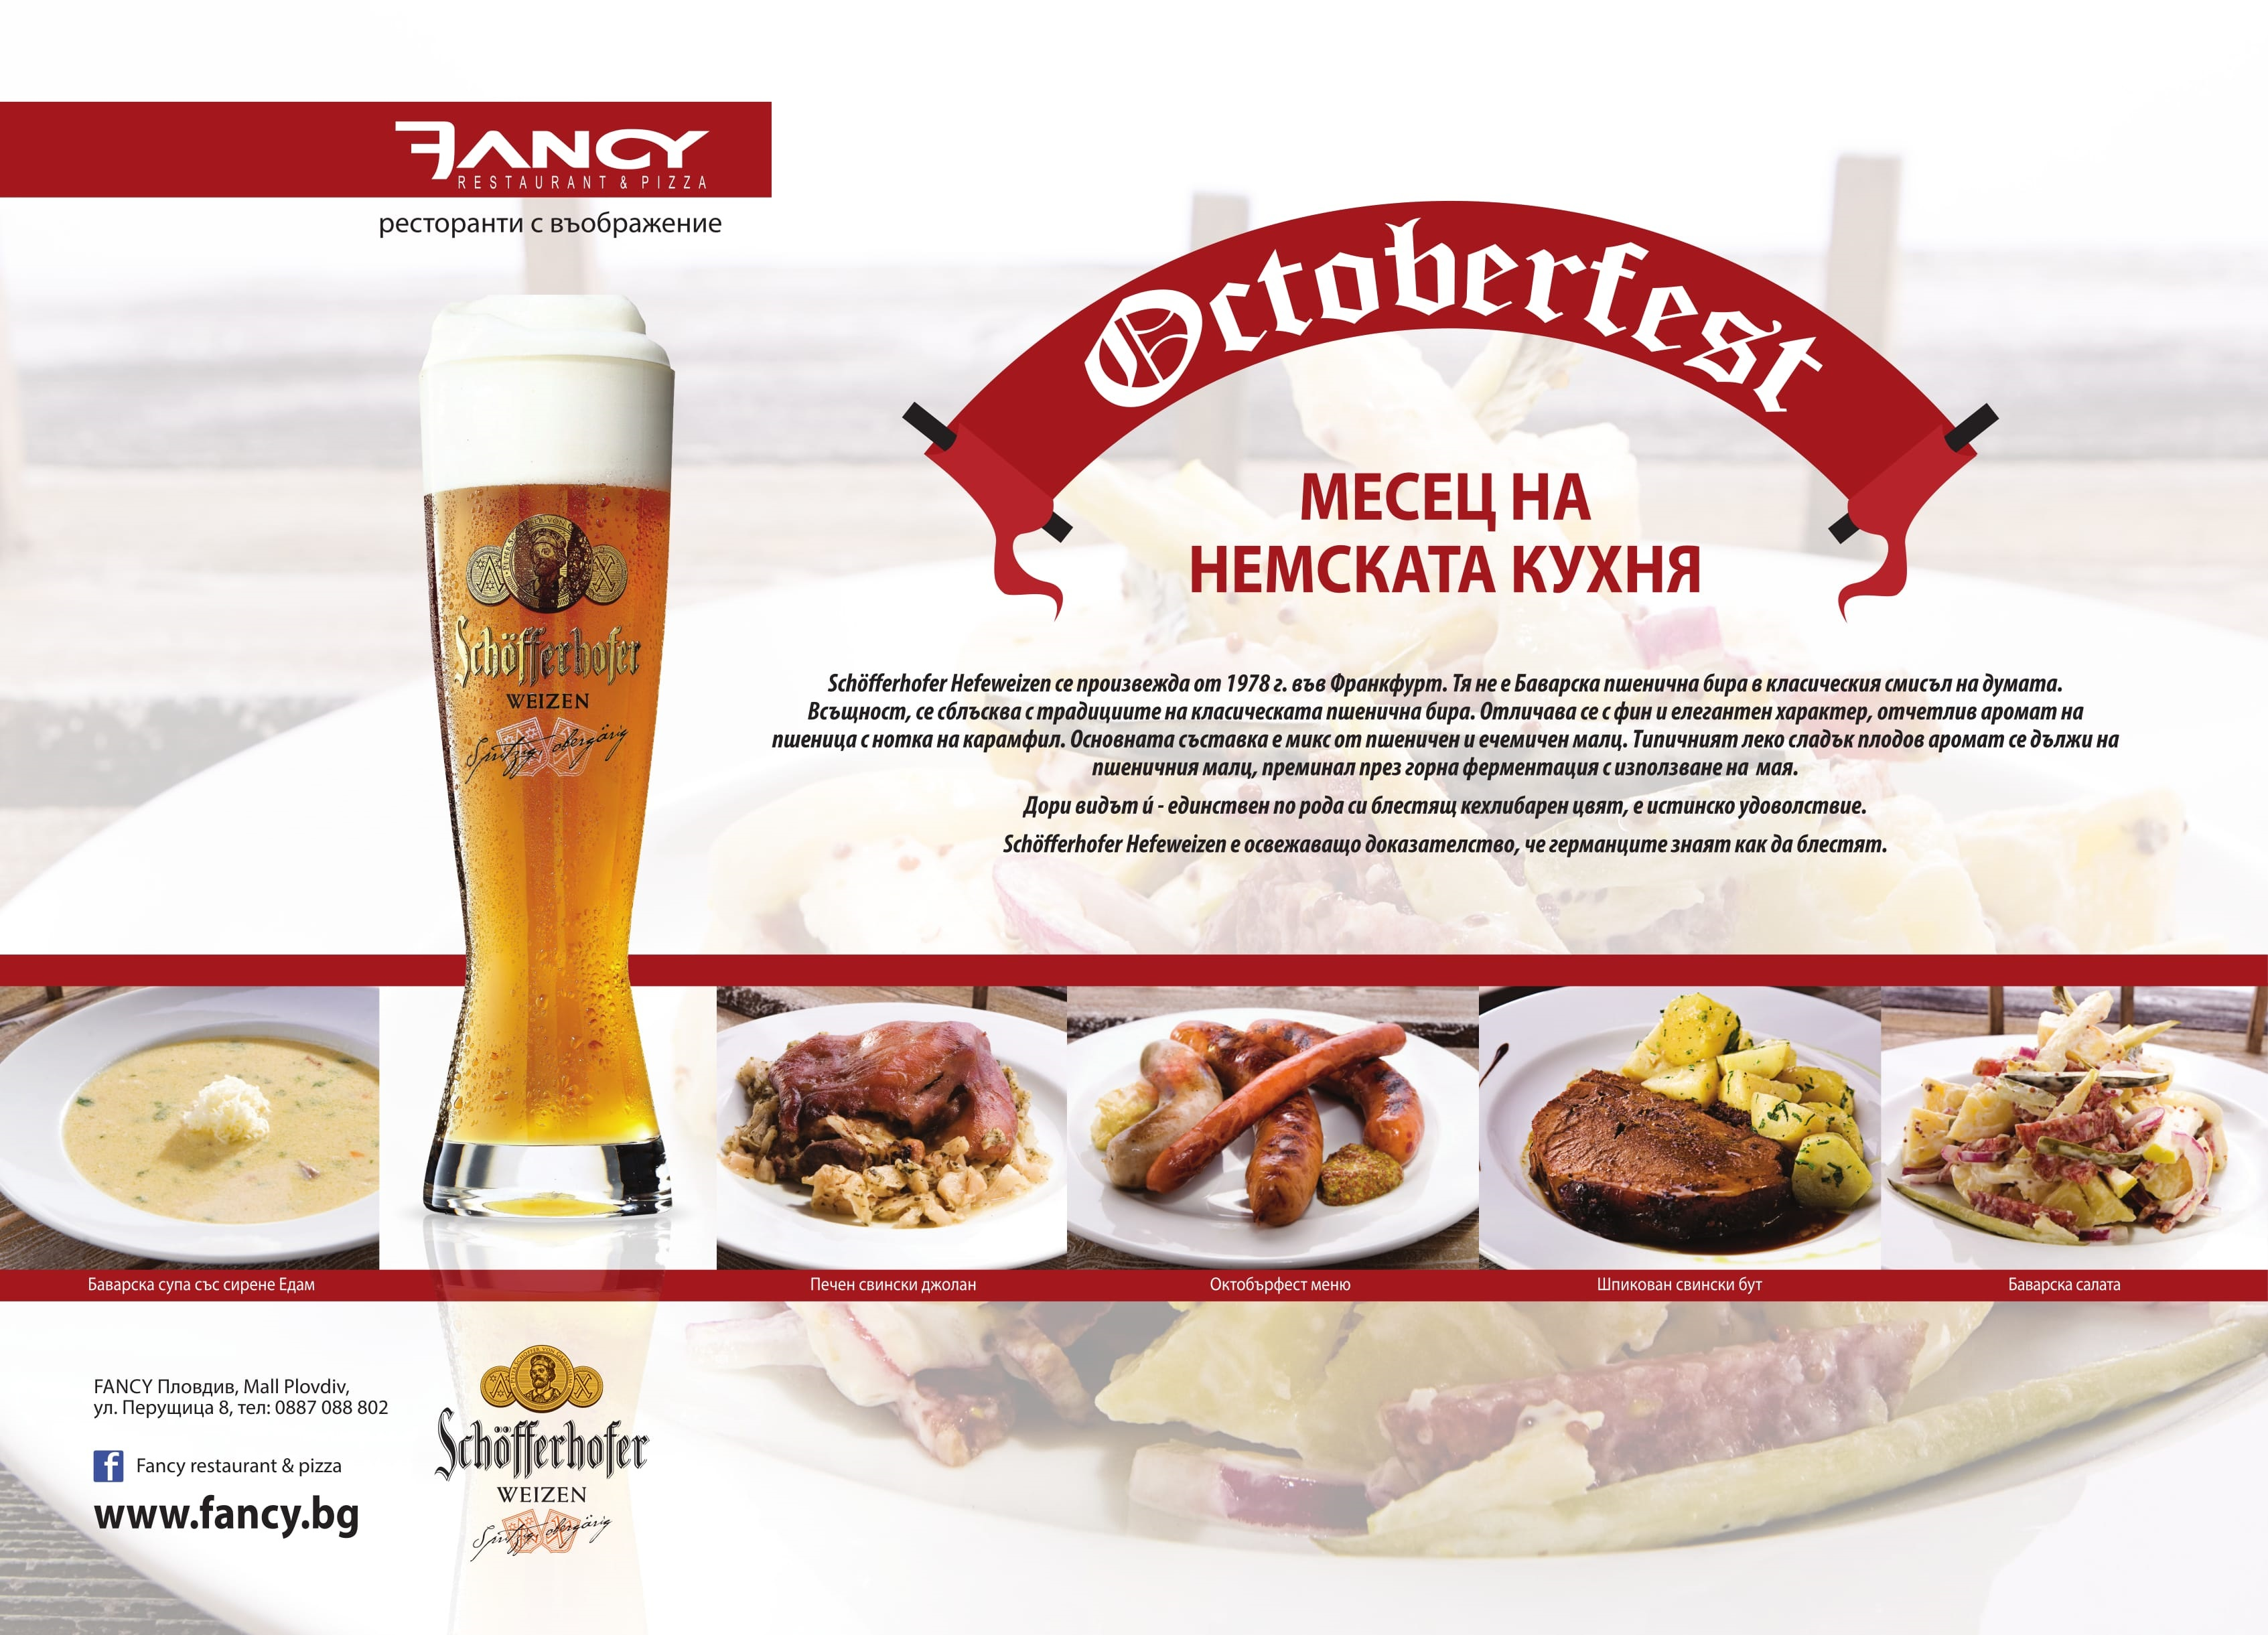 A month of German cuisine in restaurant Fancy